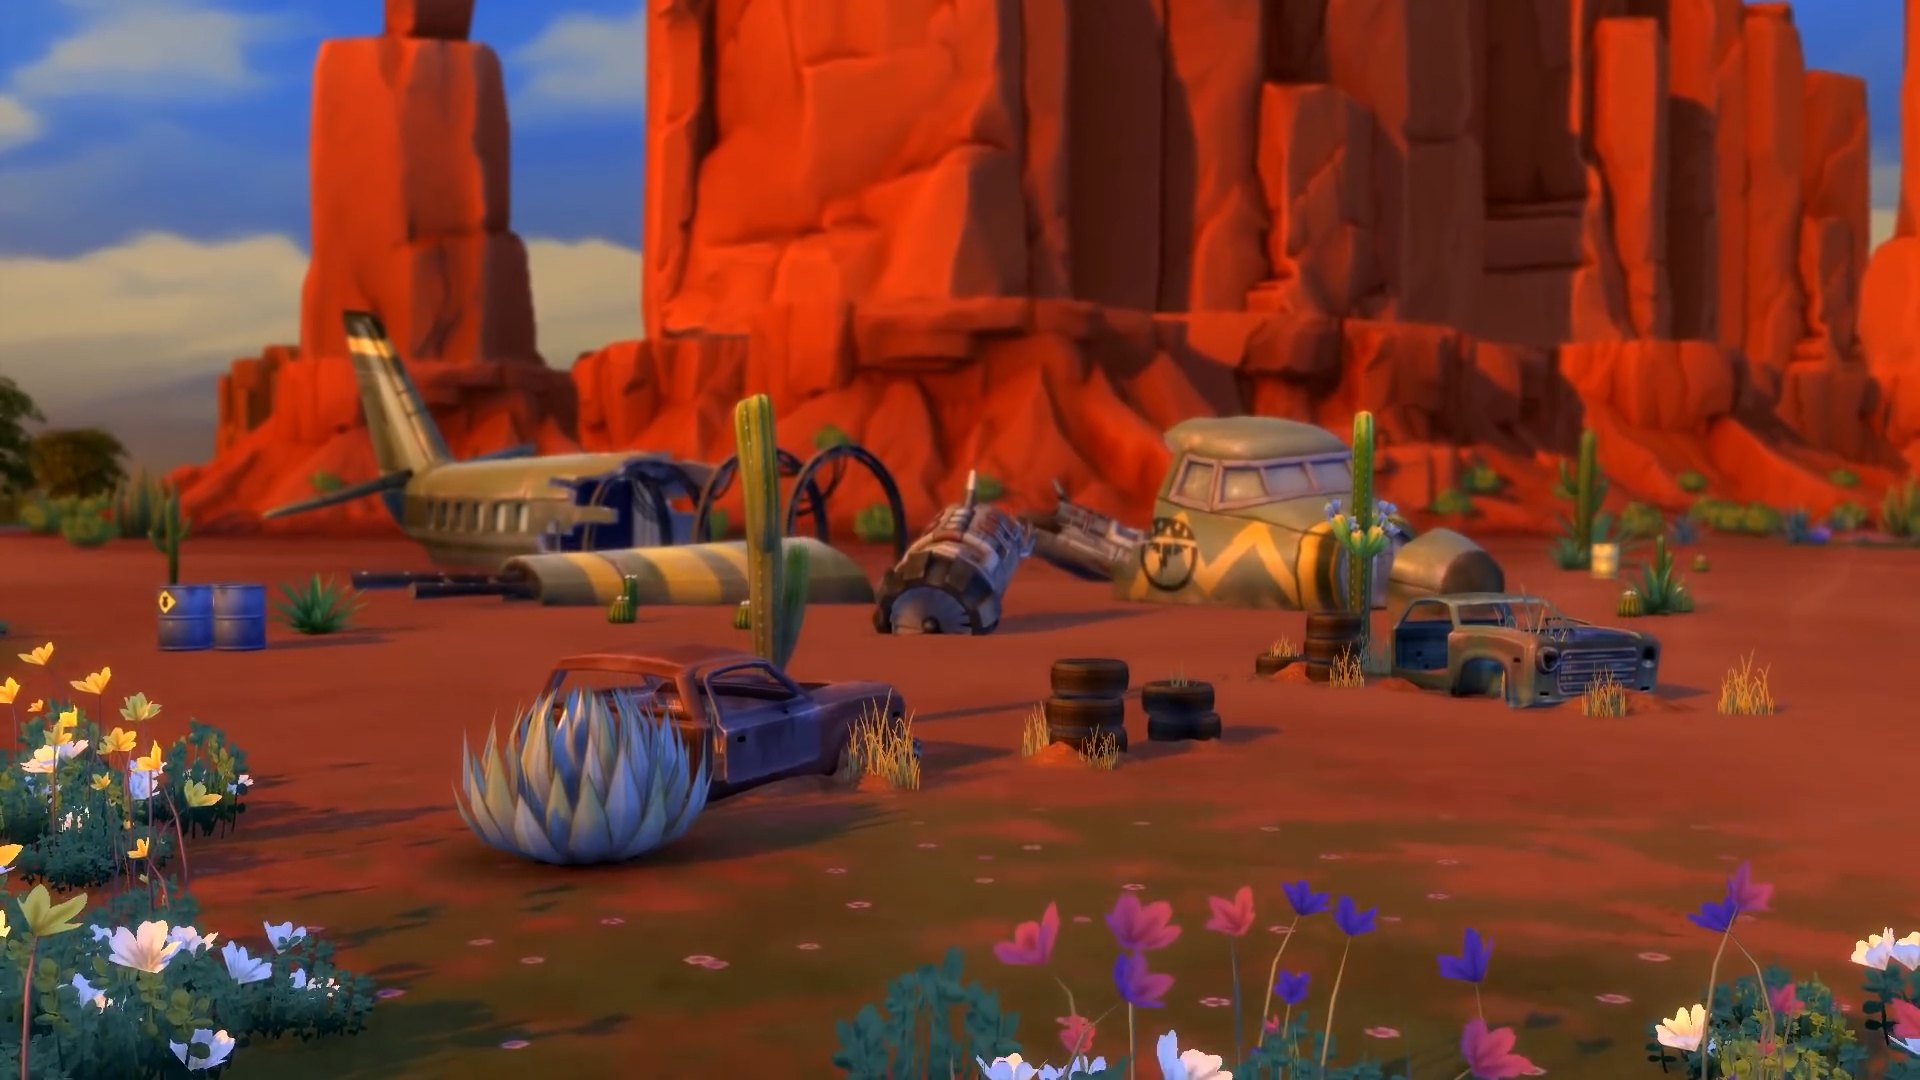 The Sims 4 Strangerville: Guides, Features & Pictures